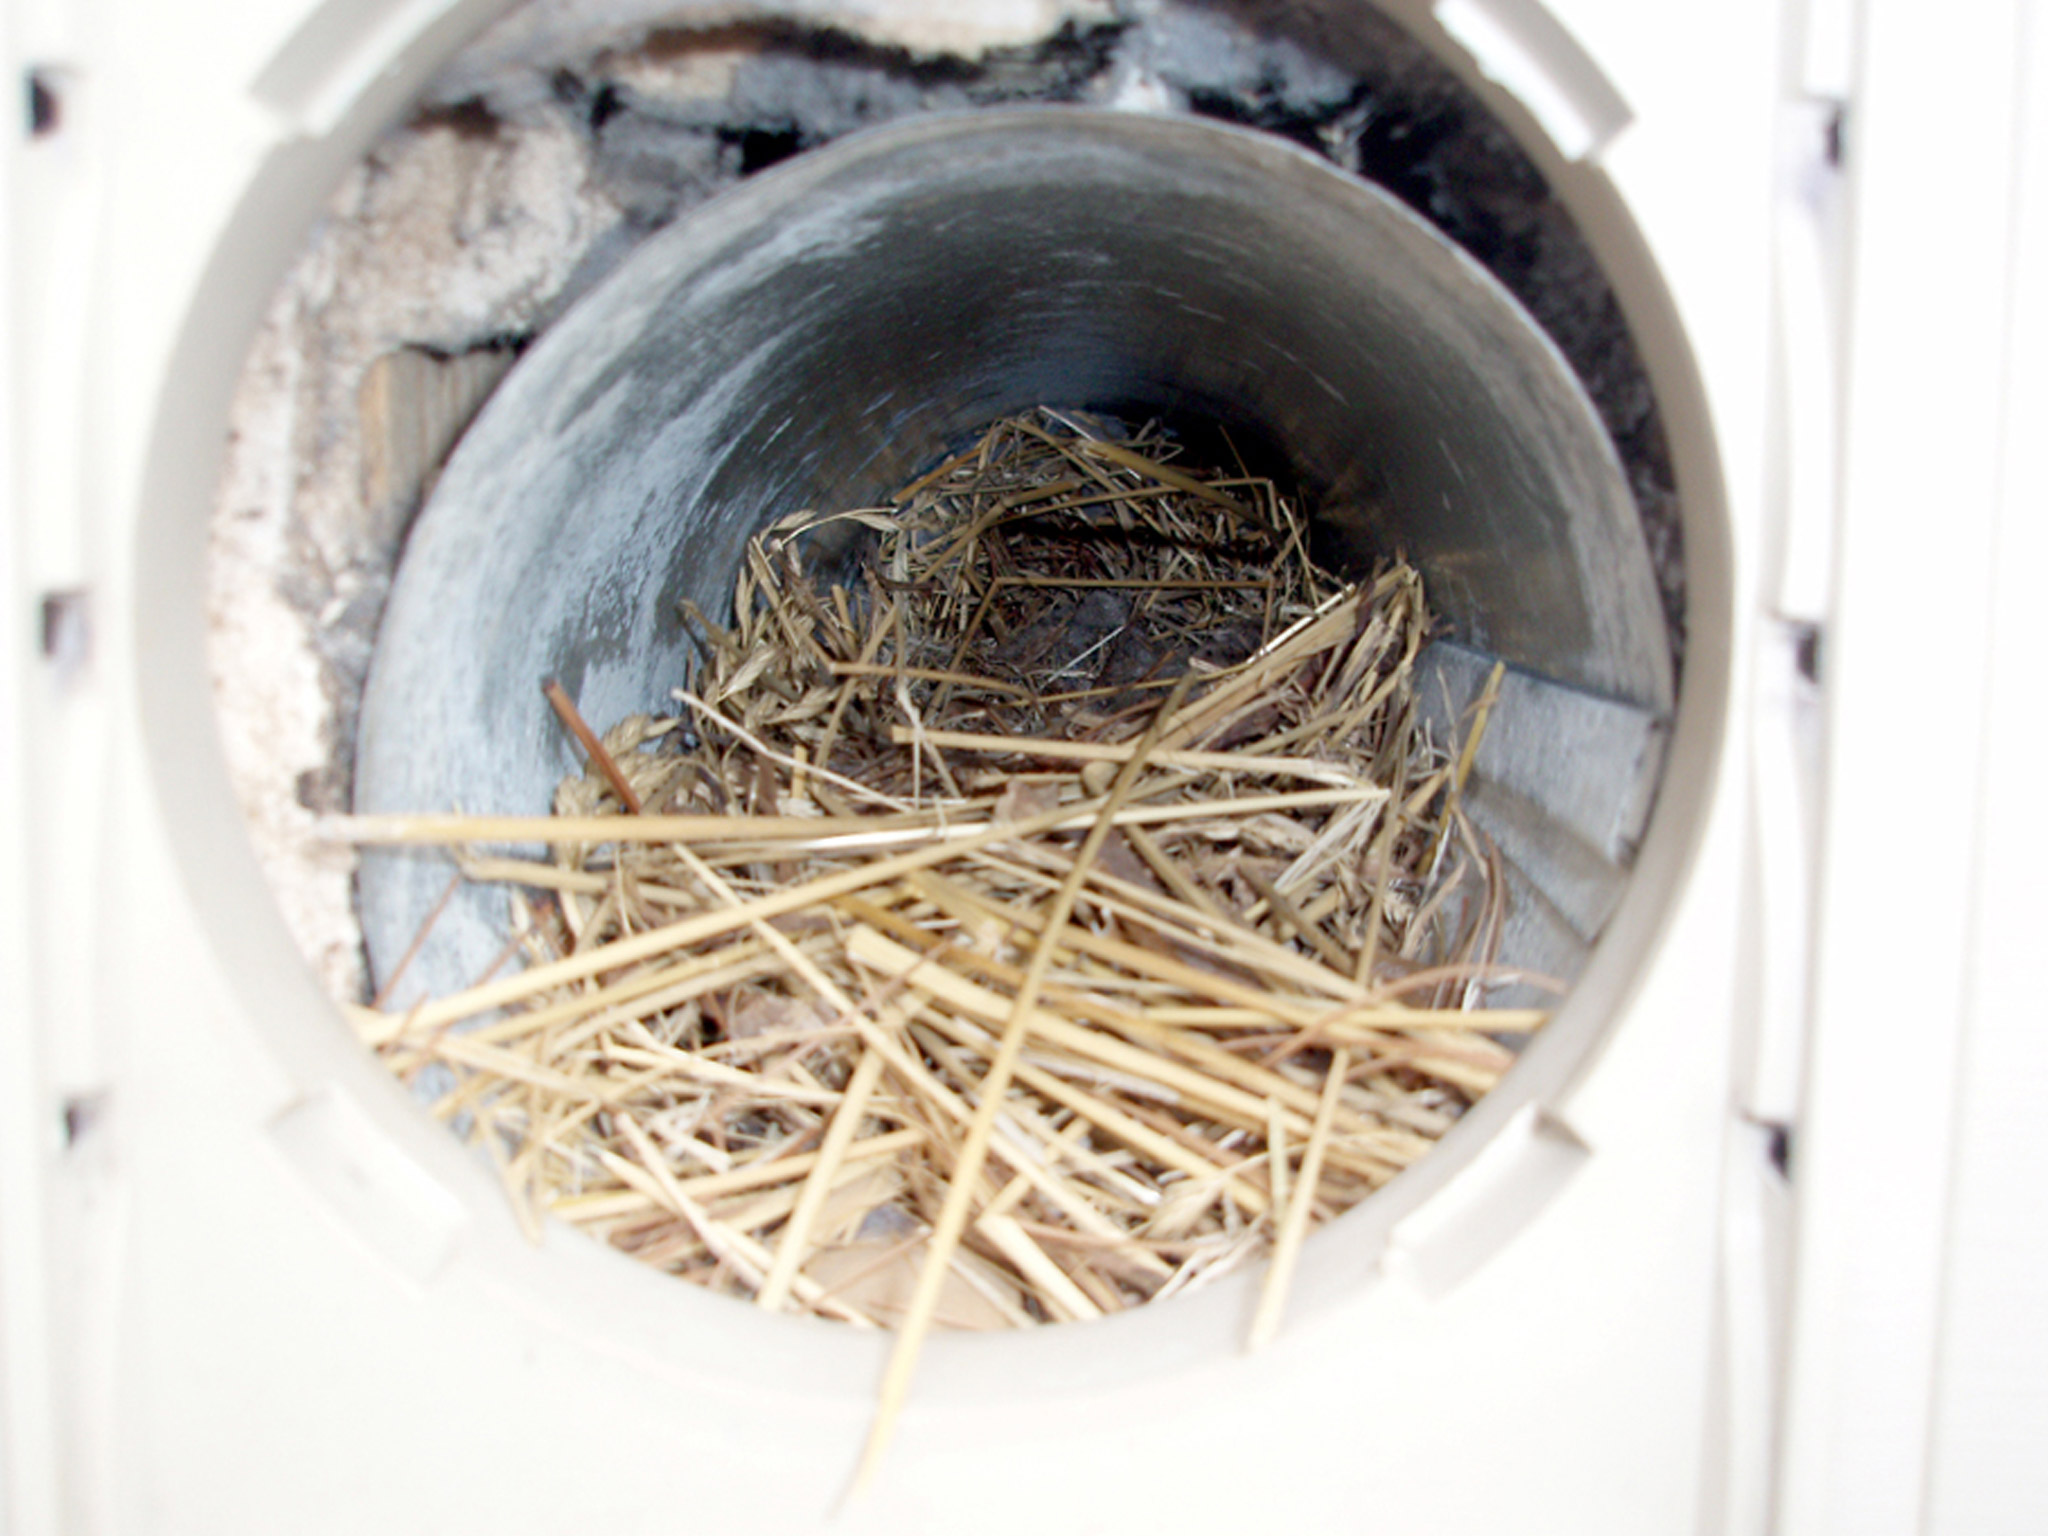 Bird Nest Built Inside Of Dryer Vent